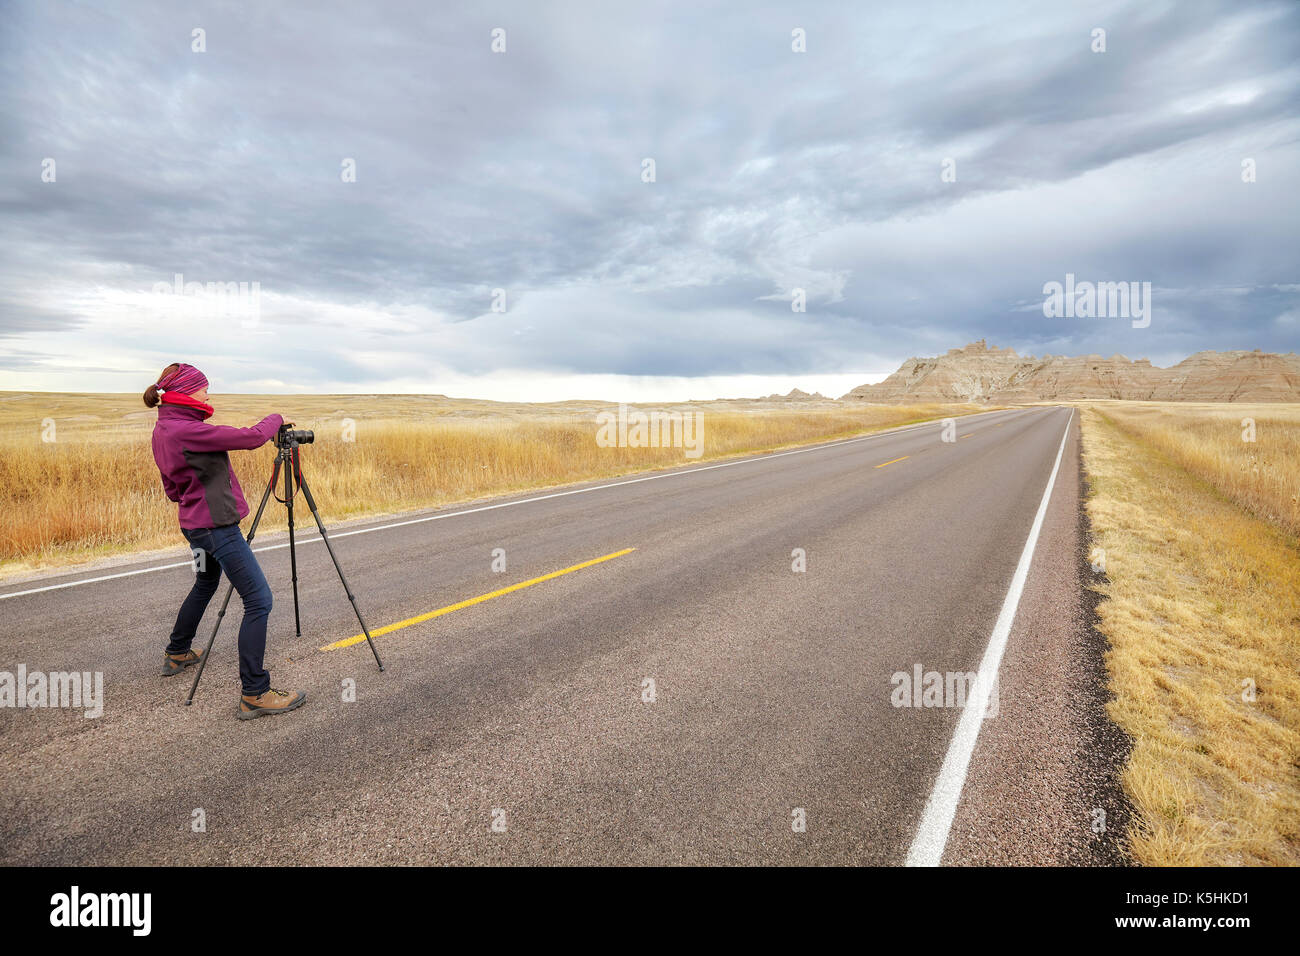 Landscape photographer takes pictures on an empty road with stormy sky, travel or work concept,  Badlands National - Stock Image